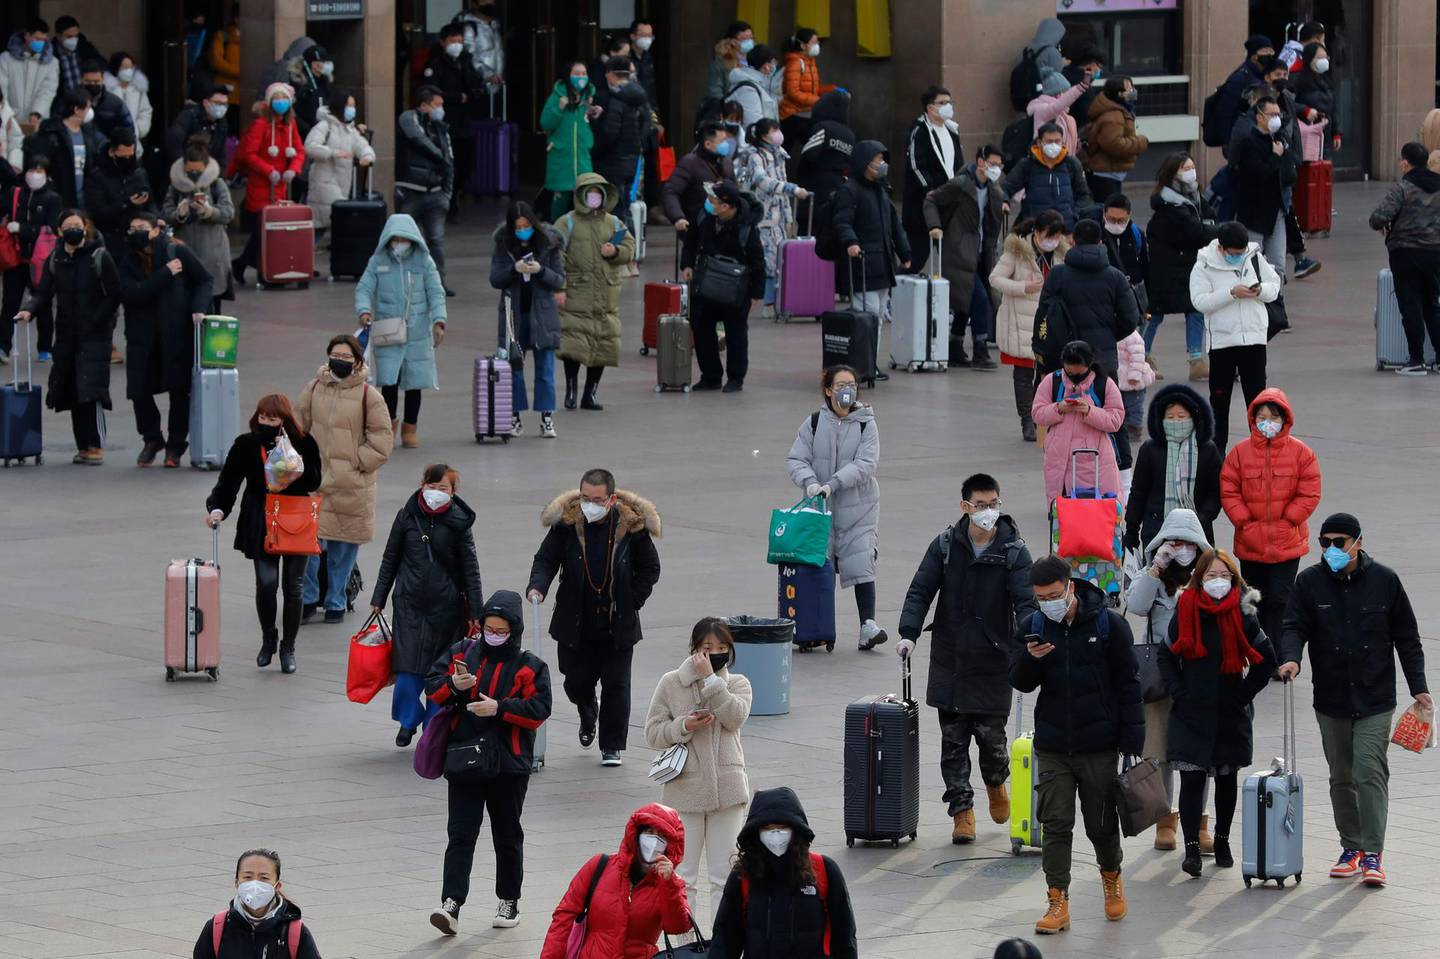 epa08184086 Chinese people wear masks as they arrive at Beijing Railway Station in Beijing, China, 01 February 2020. The outbreak of coronavirus has so far claimed over 259 lives and infected more than 12,000 others, according to media reports.  EPA/WU HONG